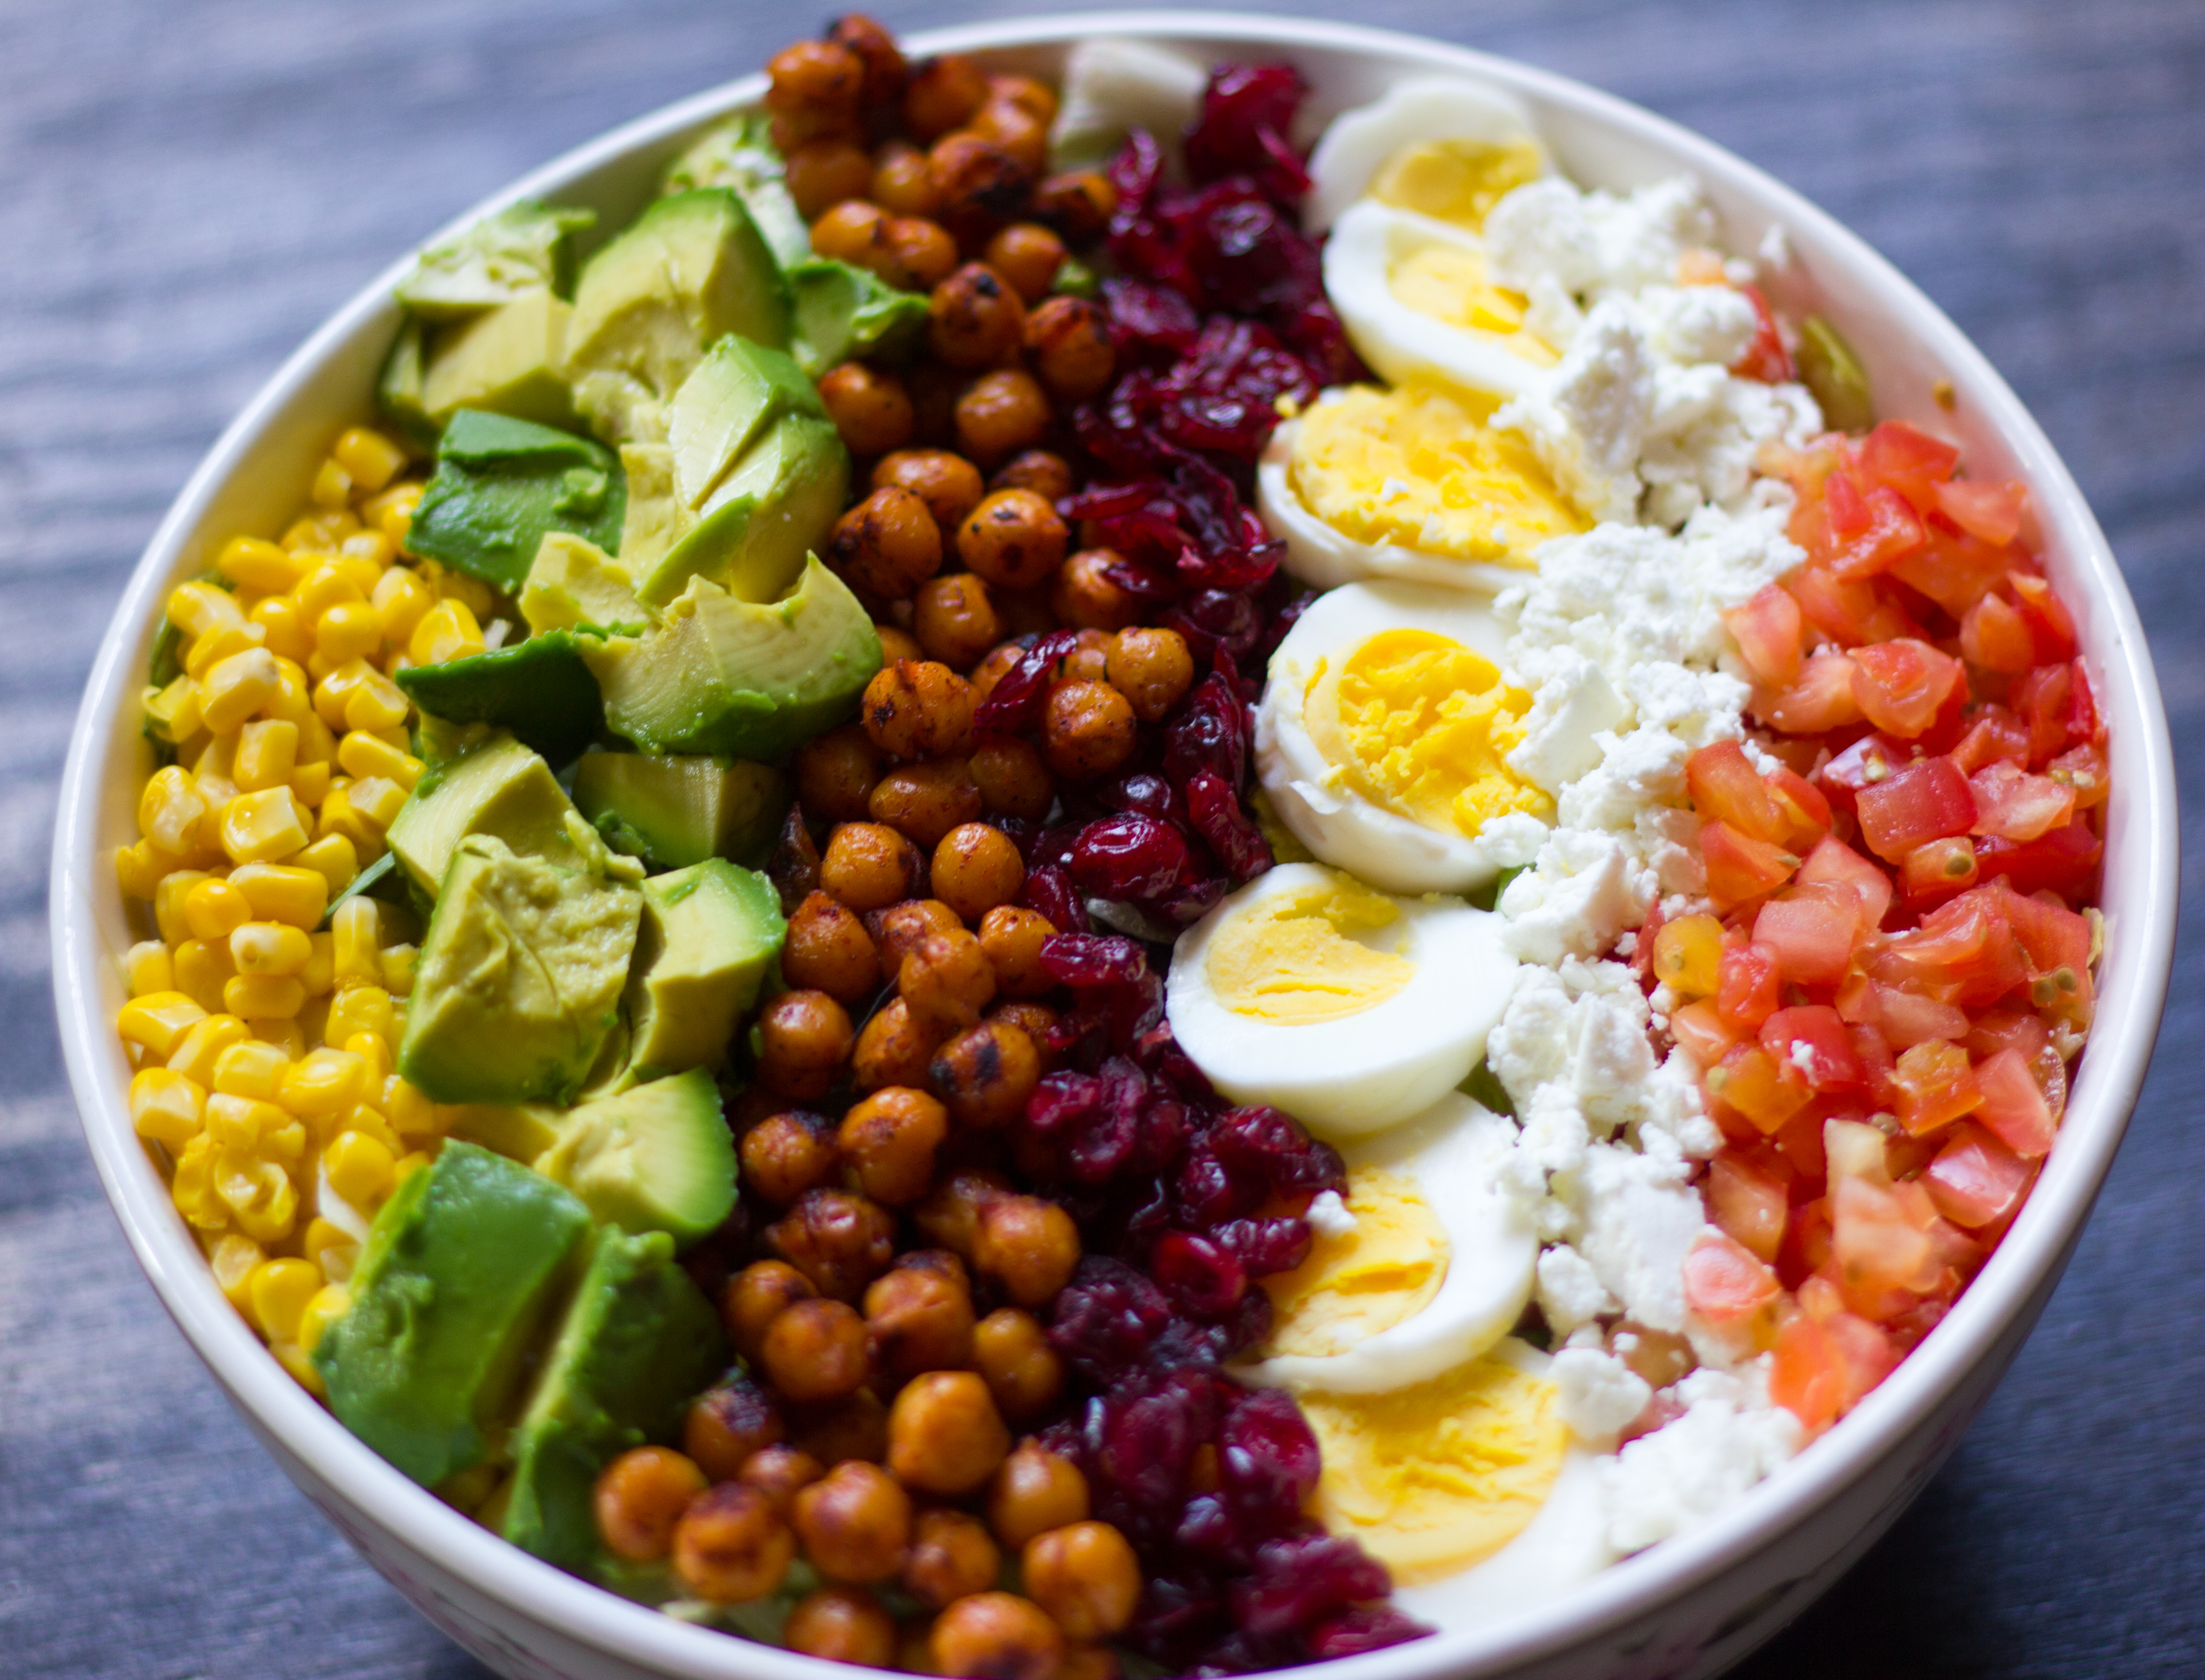 Vegetarian Cobb Salad with Smoky Chickpeas